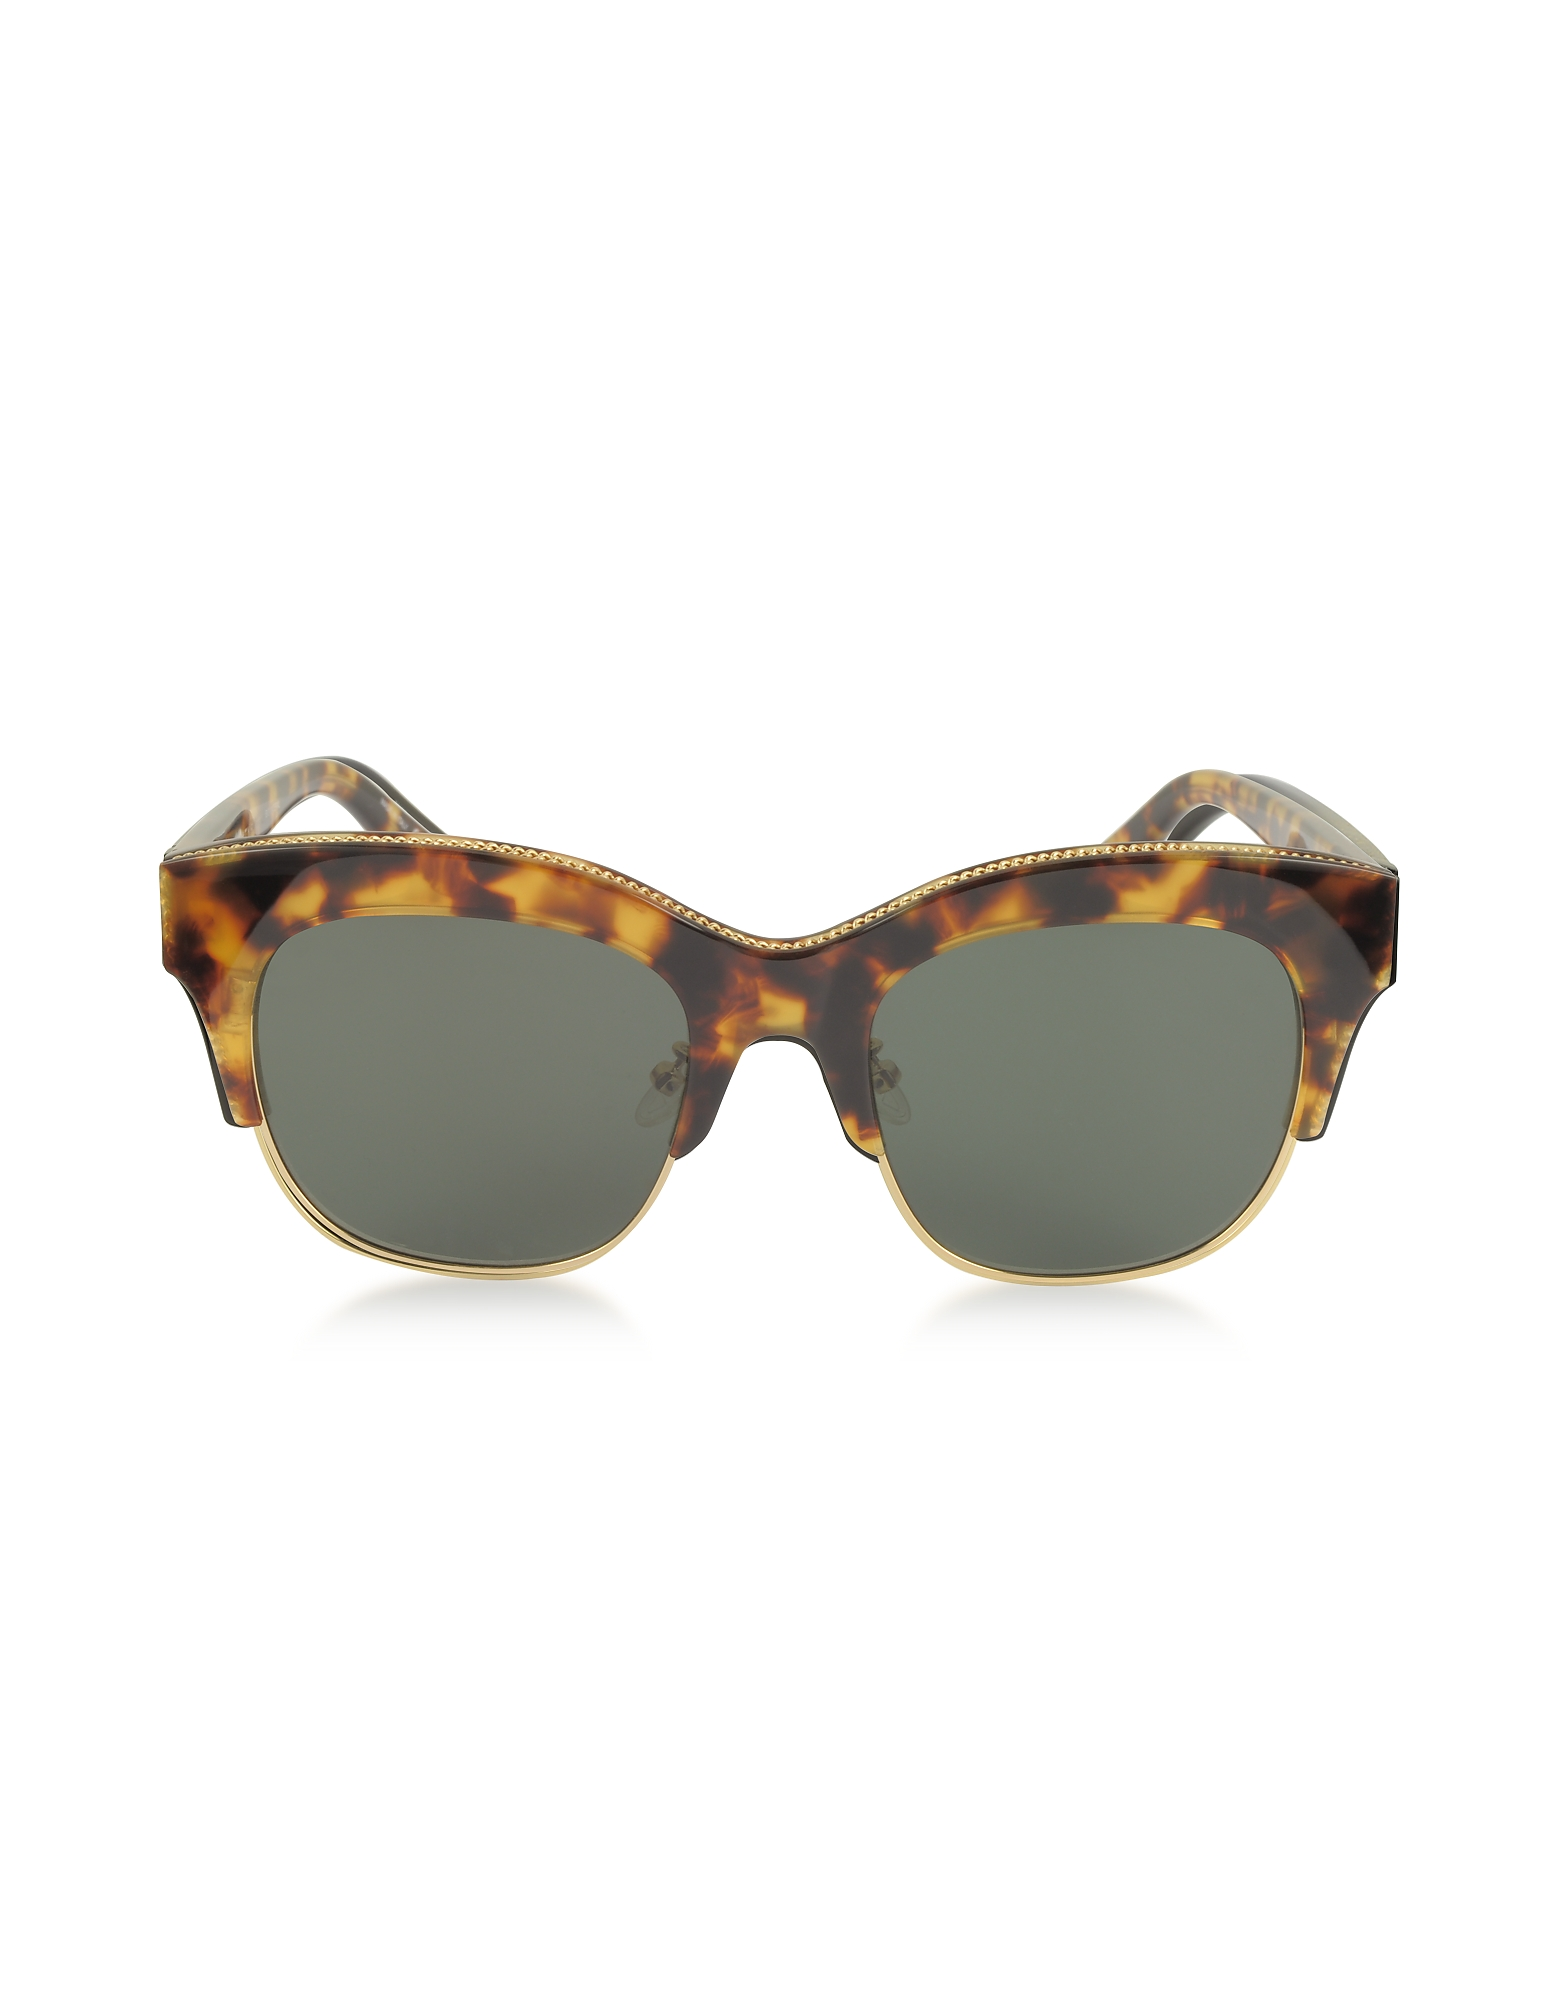 Stella McCartney Designer Sunglasses, SC0075S Acetate Cat Eye Women's Sunglasses